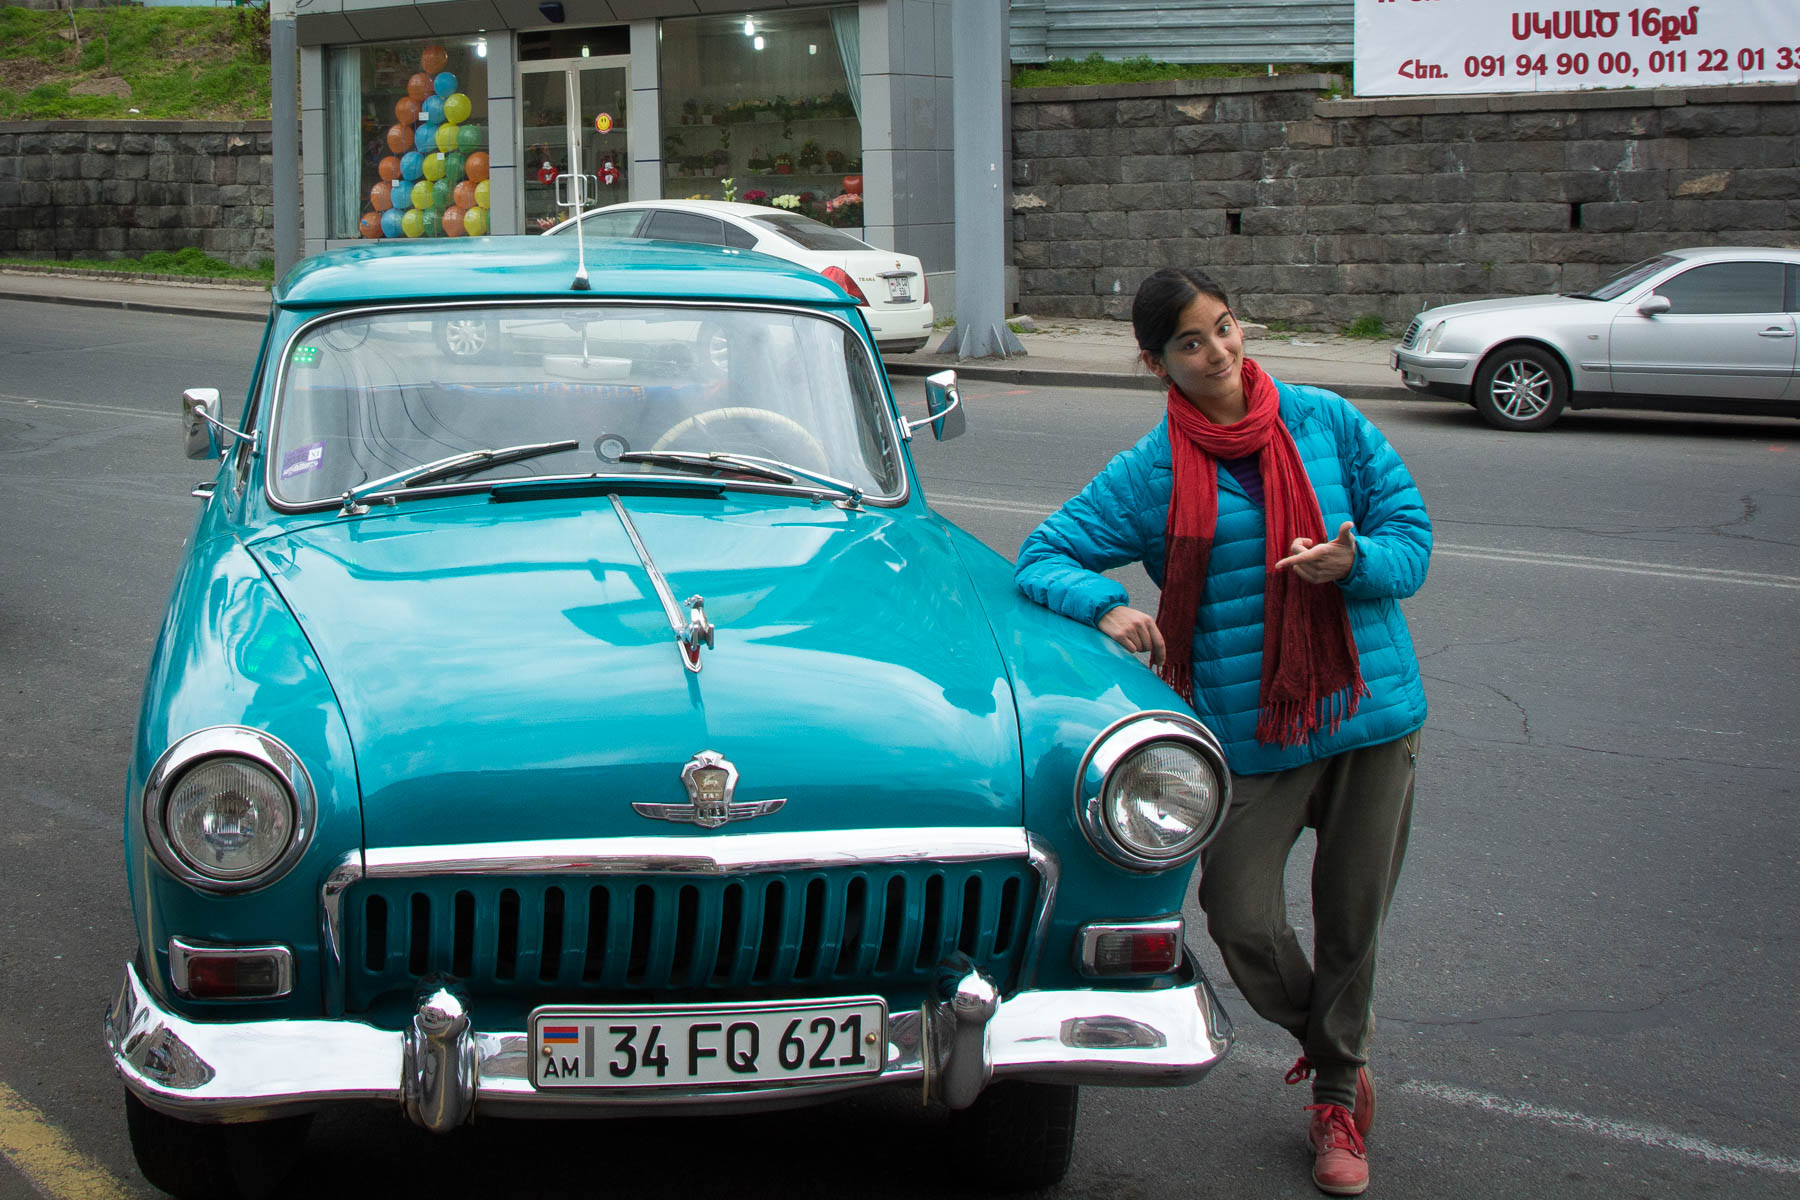 Cool turquoise taxi in Yerevan, Armenia.